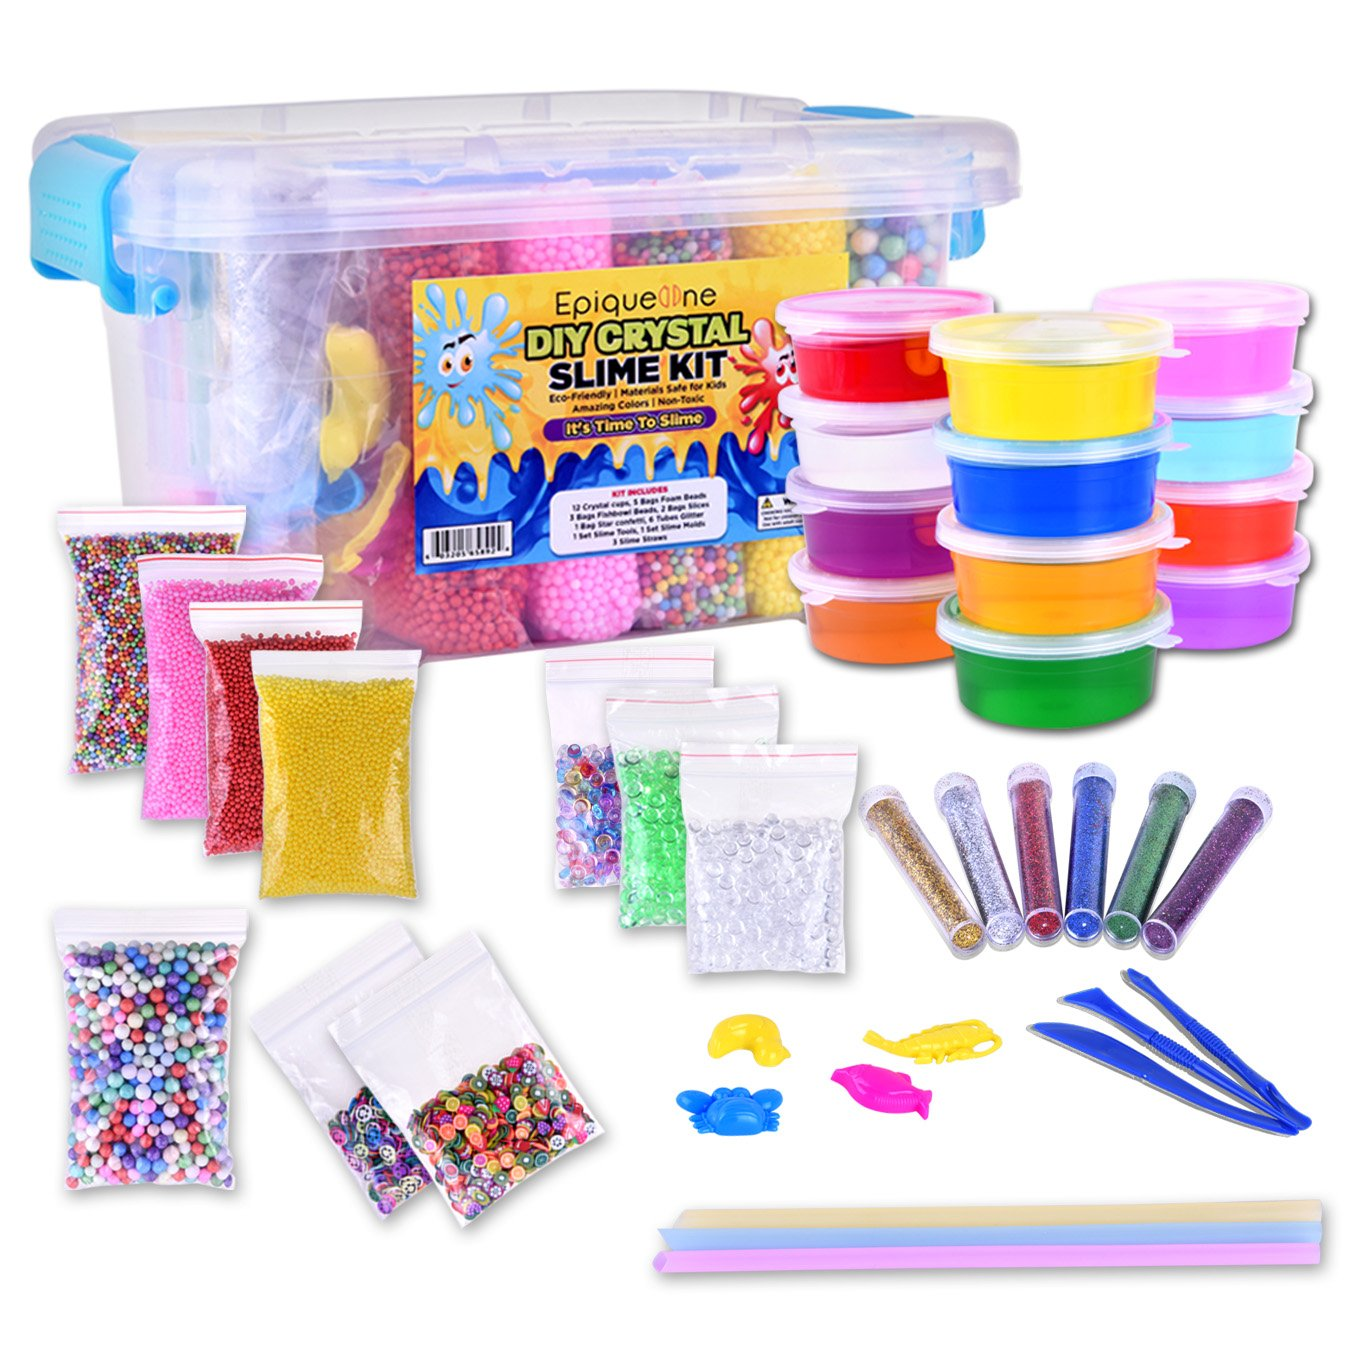 EpiqueOne DIY Slime Kit: 47-Piece Fluffy Slime Making Supplies| 12 Cups Crystal Slime Colorful Foam/Fishbowl Beads Glitter & Slime Tools in Slime Container|for Holidays Birthday